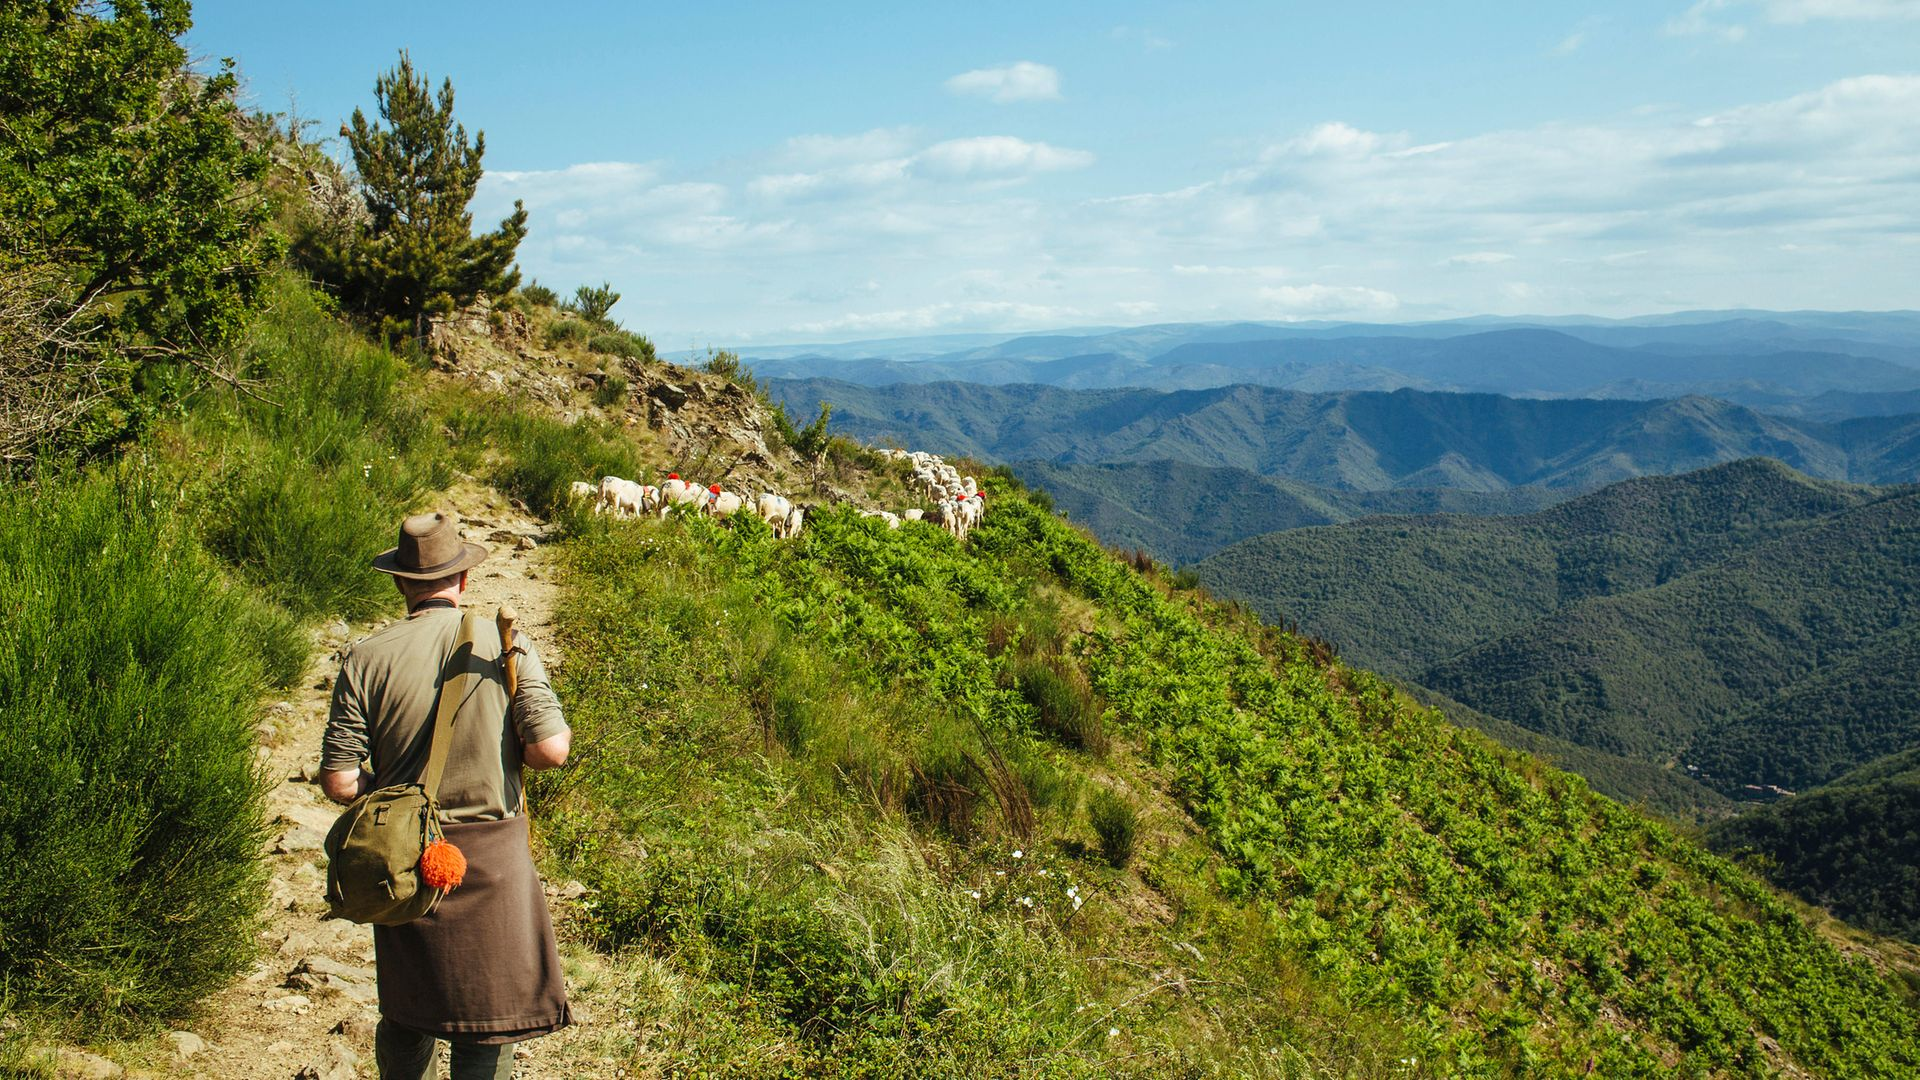 A shepherd herds a flock of sheep in the Cevennes mountain range - Credit: Universal Images Group via Getty